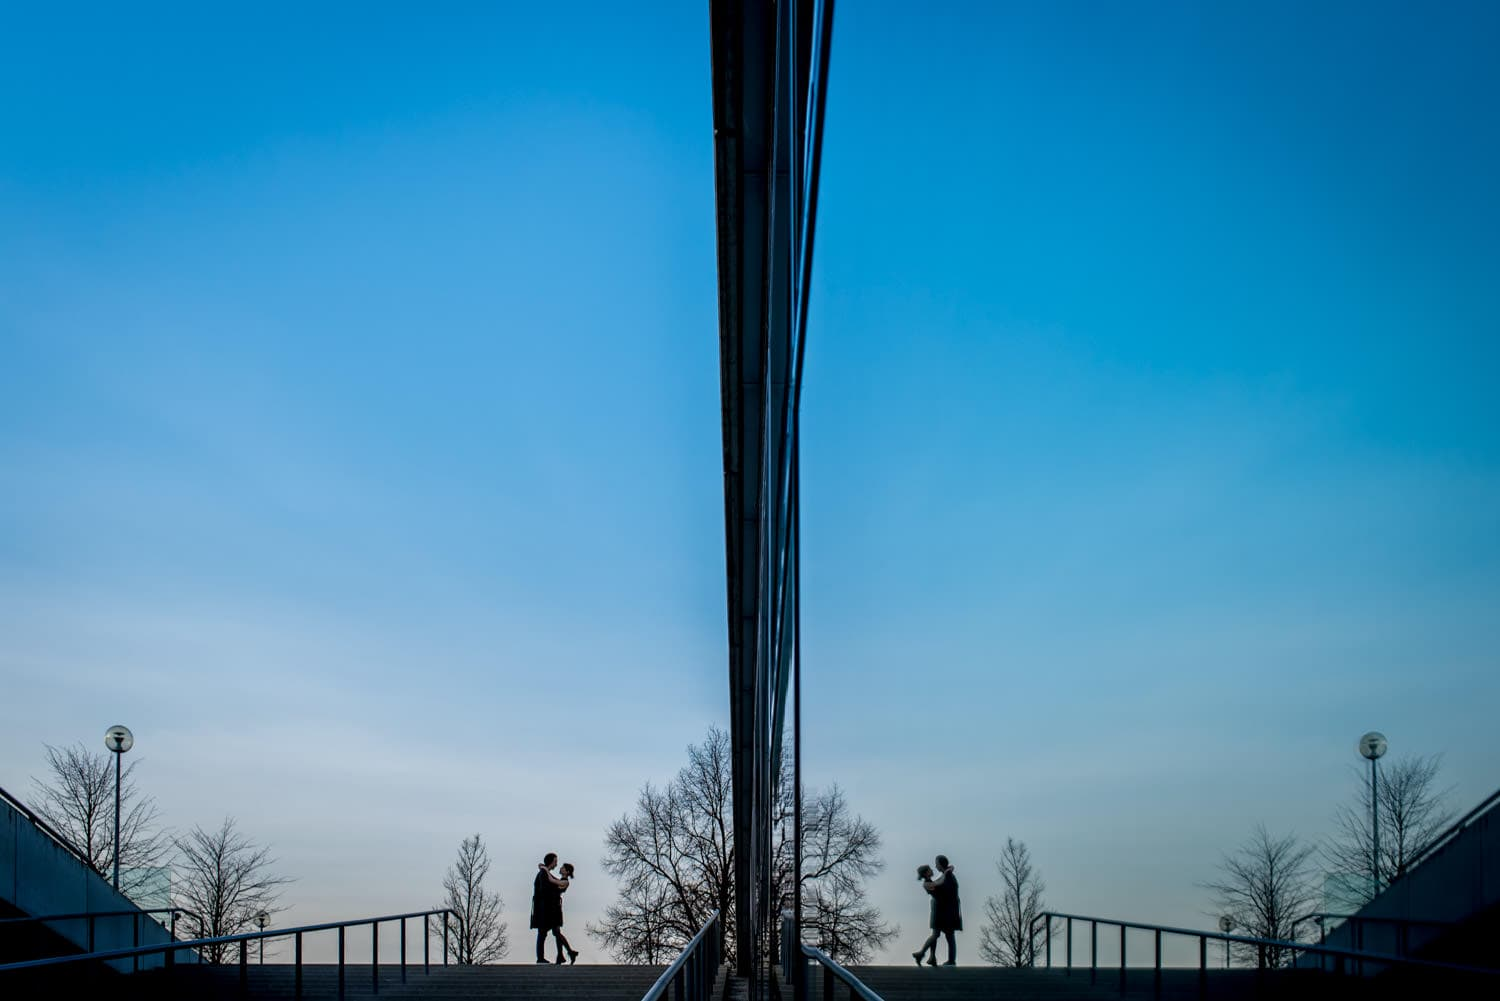 couple in glass reflection with blue sky